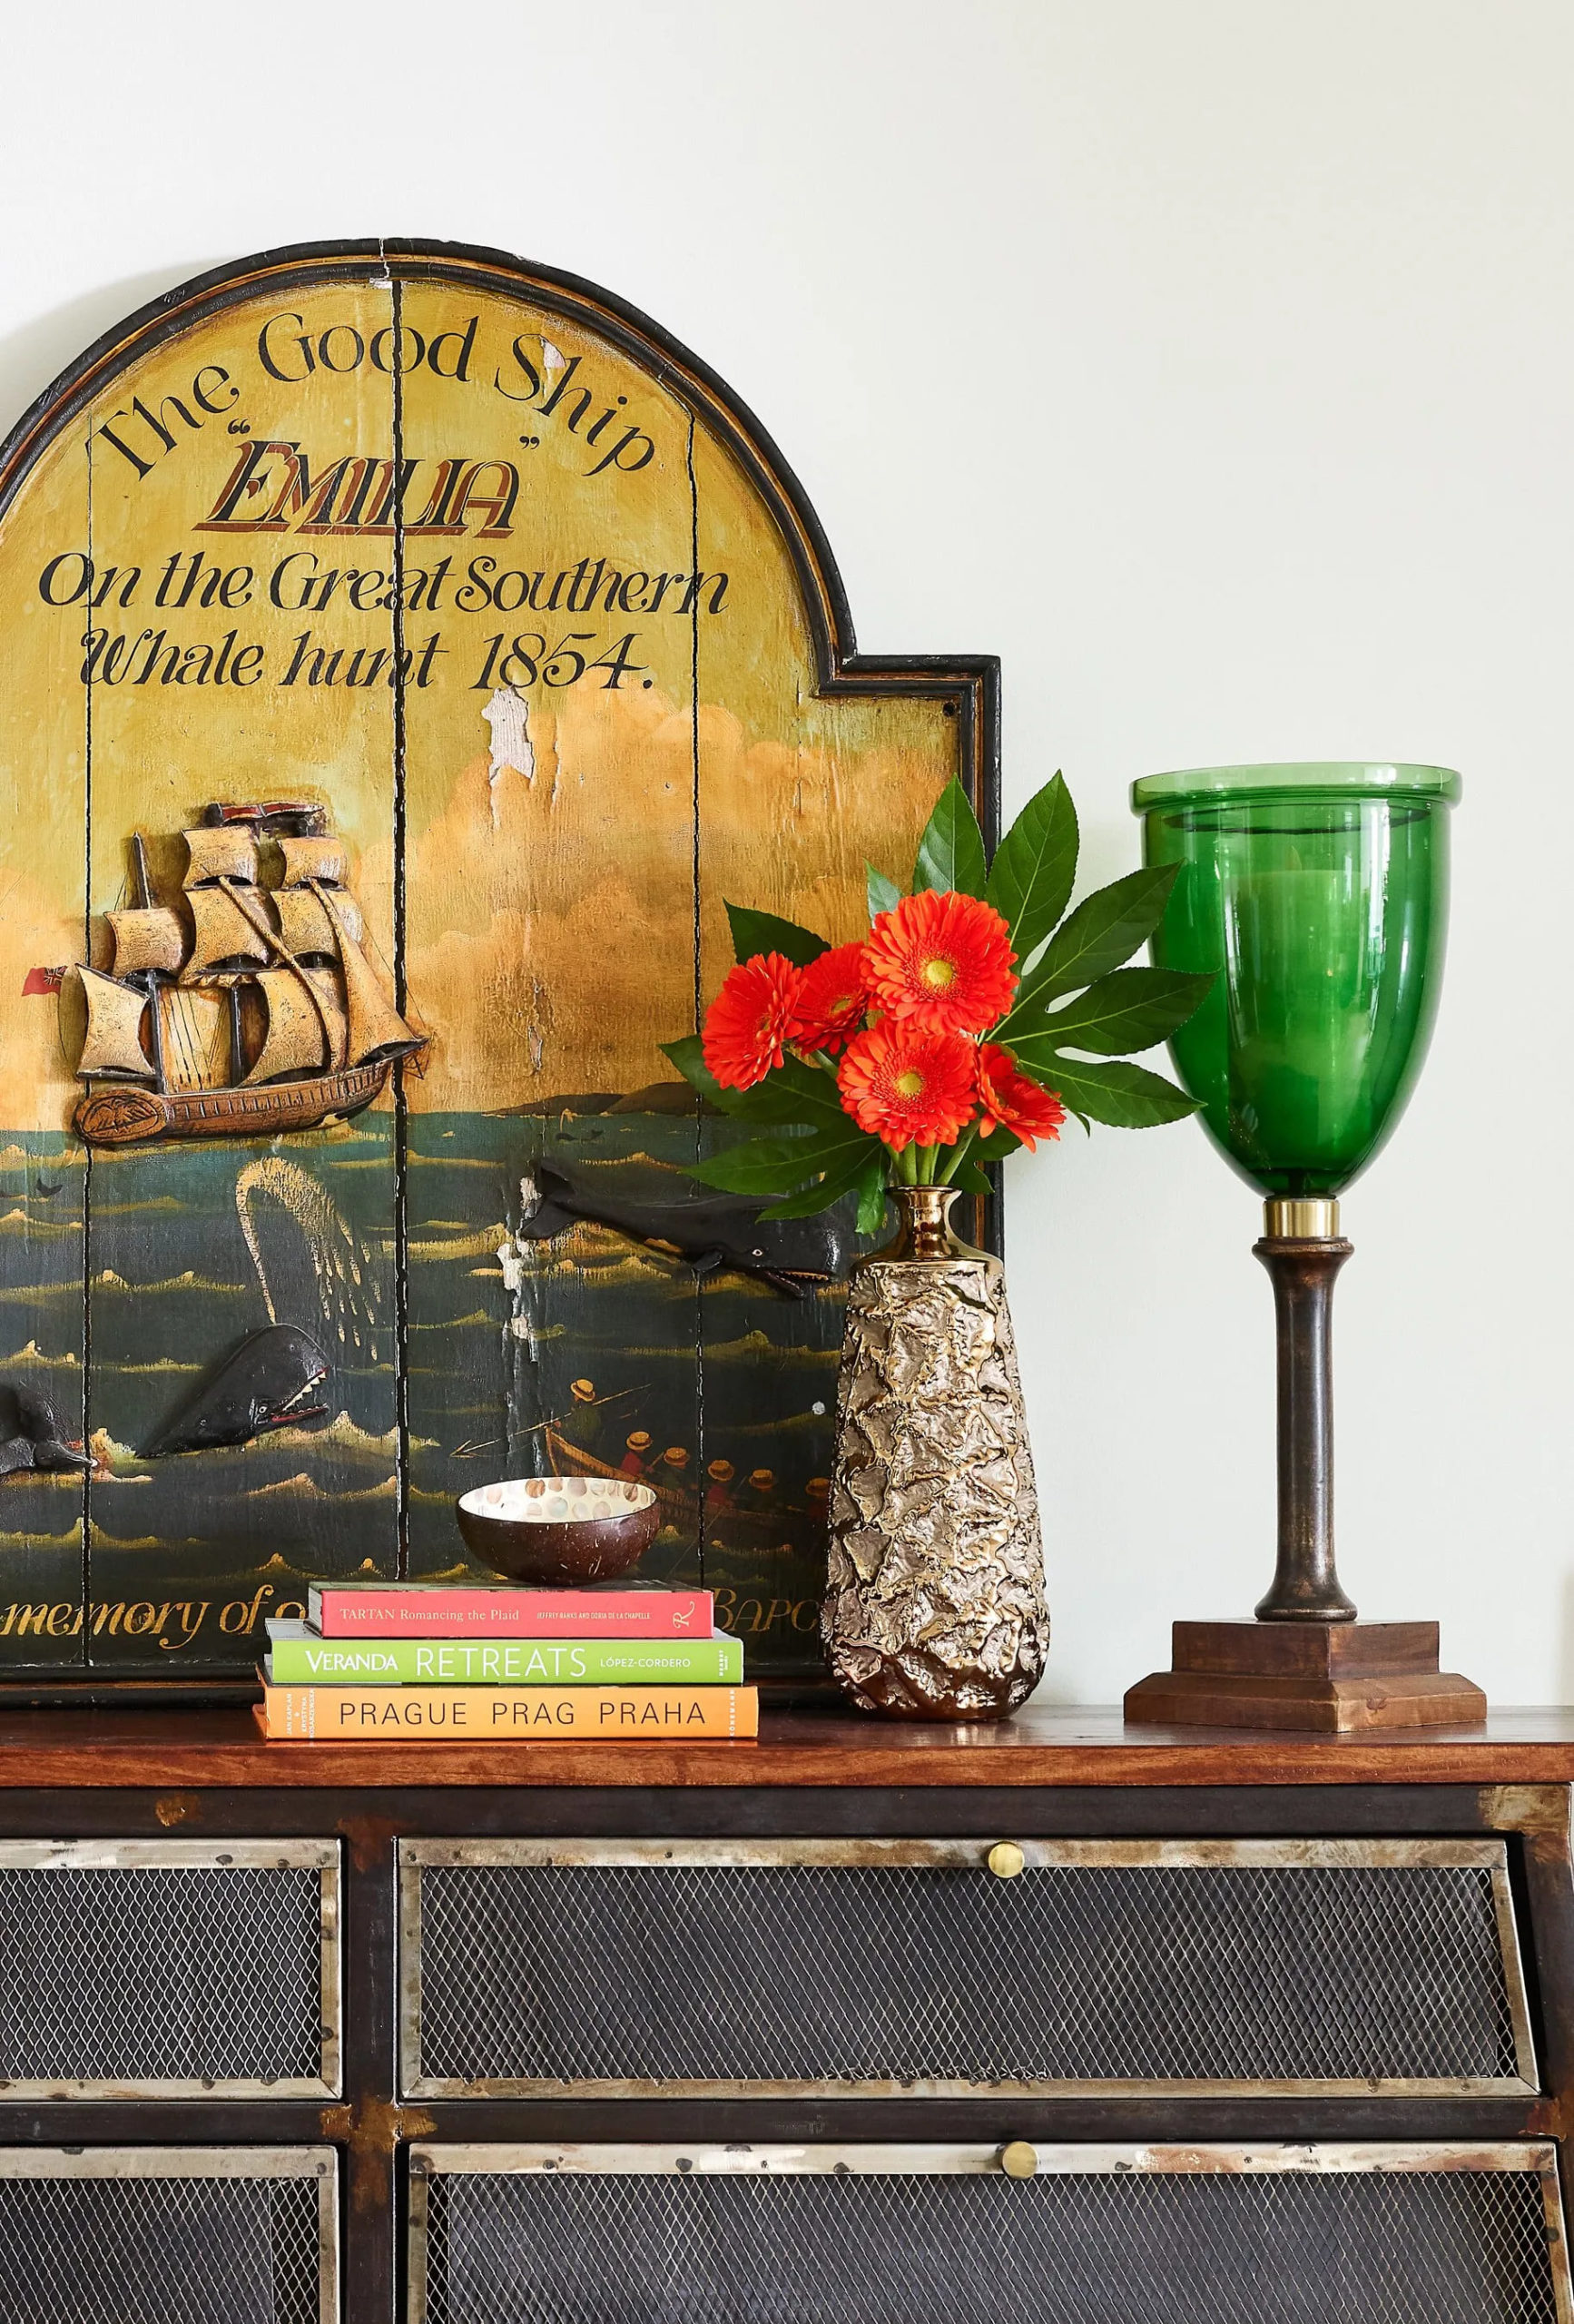 Lwinteriors Pied A Terrecharlestown Console Crop Small 1920w